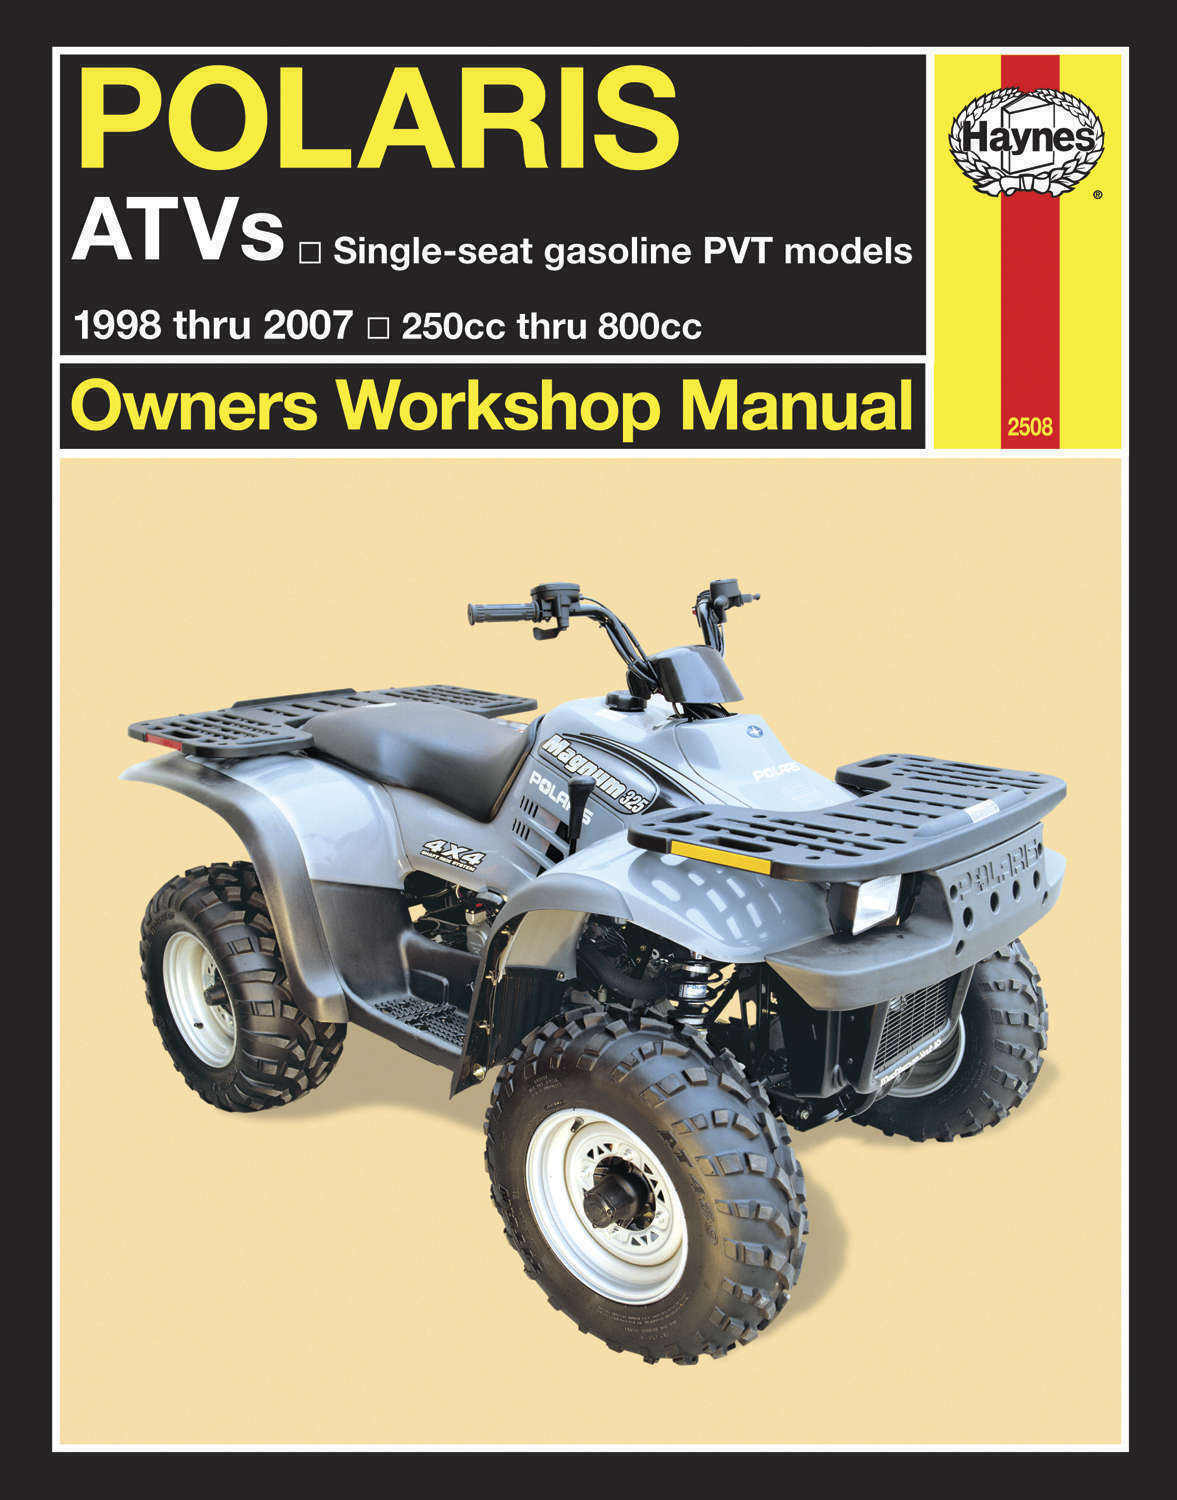 Haynes Service Manual Polaris Sportsman 400 1998 2005 Sport Xplorer 300 Wiring Diagram 1 Of 1free Shipping